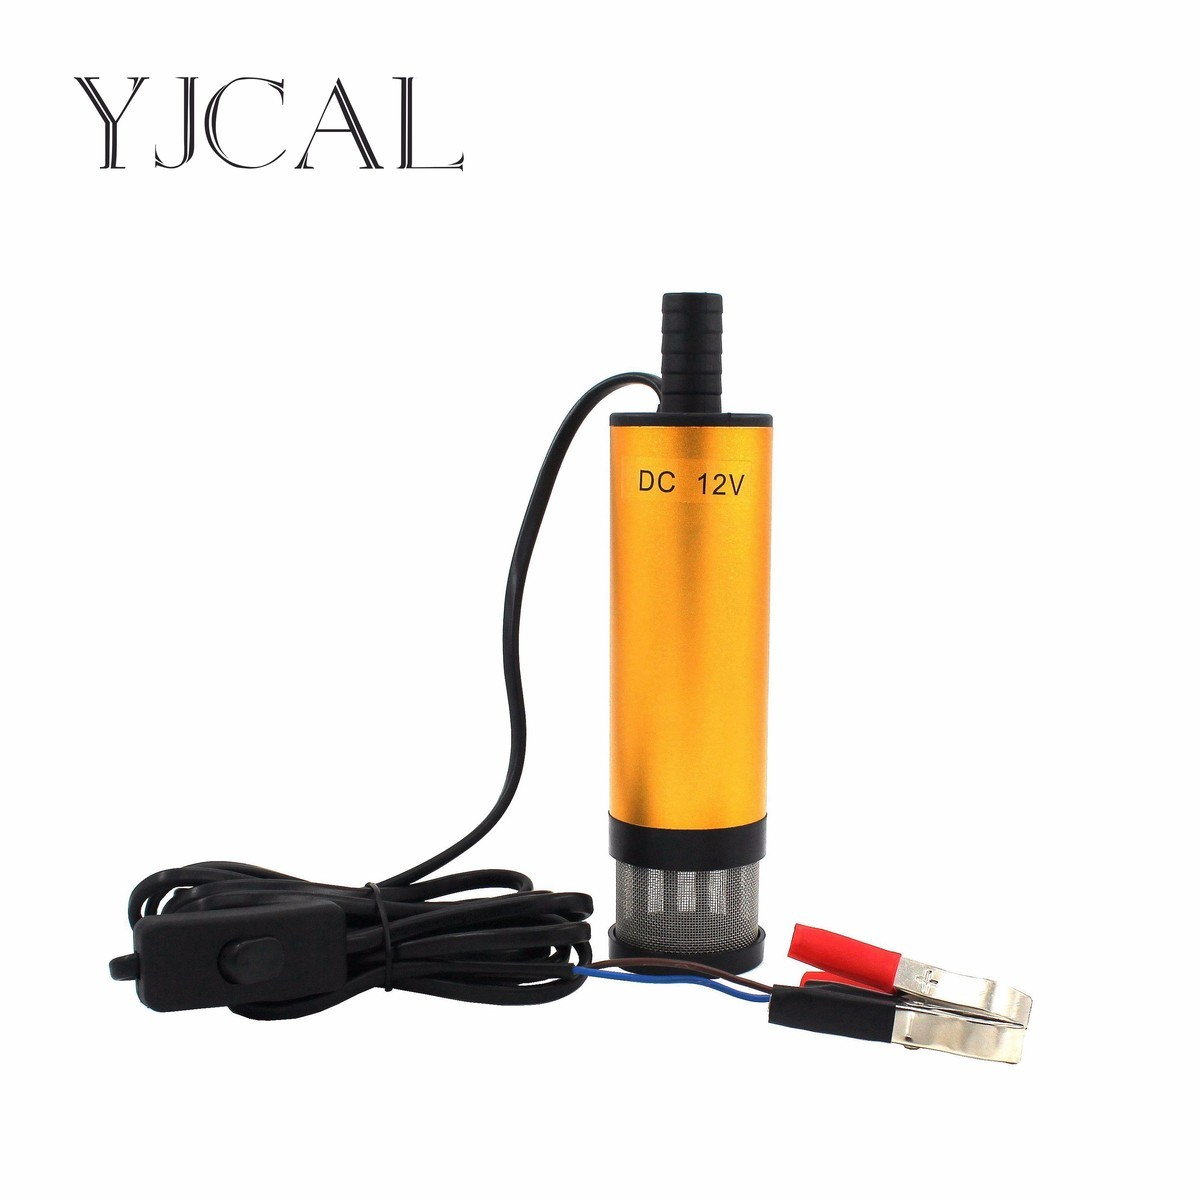 Car Electric Submersible Pump Diameter 51MM DC 12V 24V Motor Suction Oil Water Disel Pump Stainless Steel Band Strainer